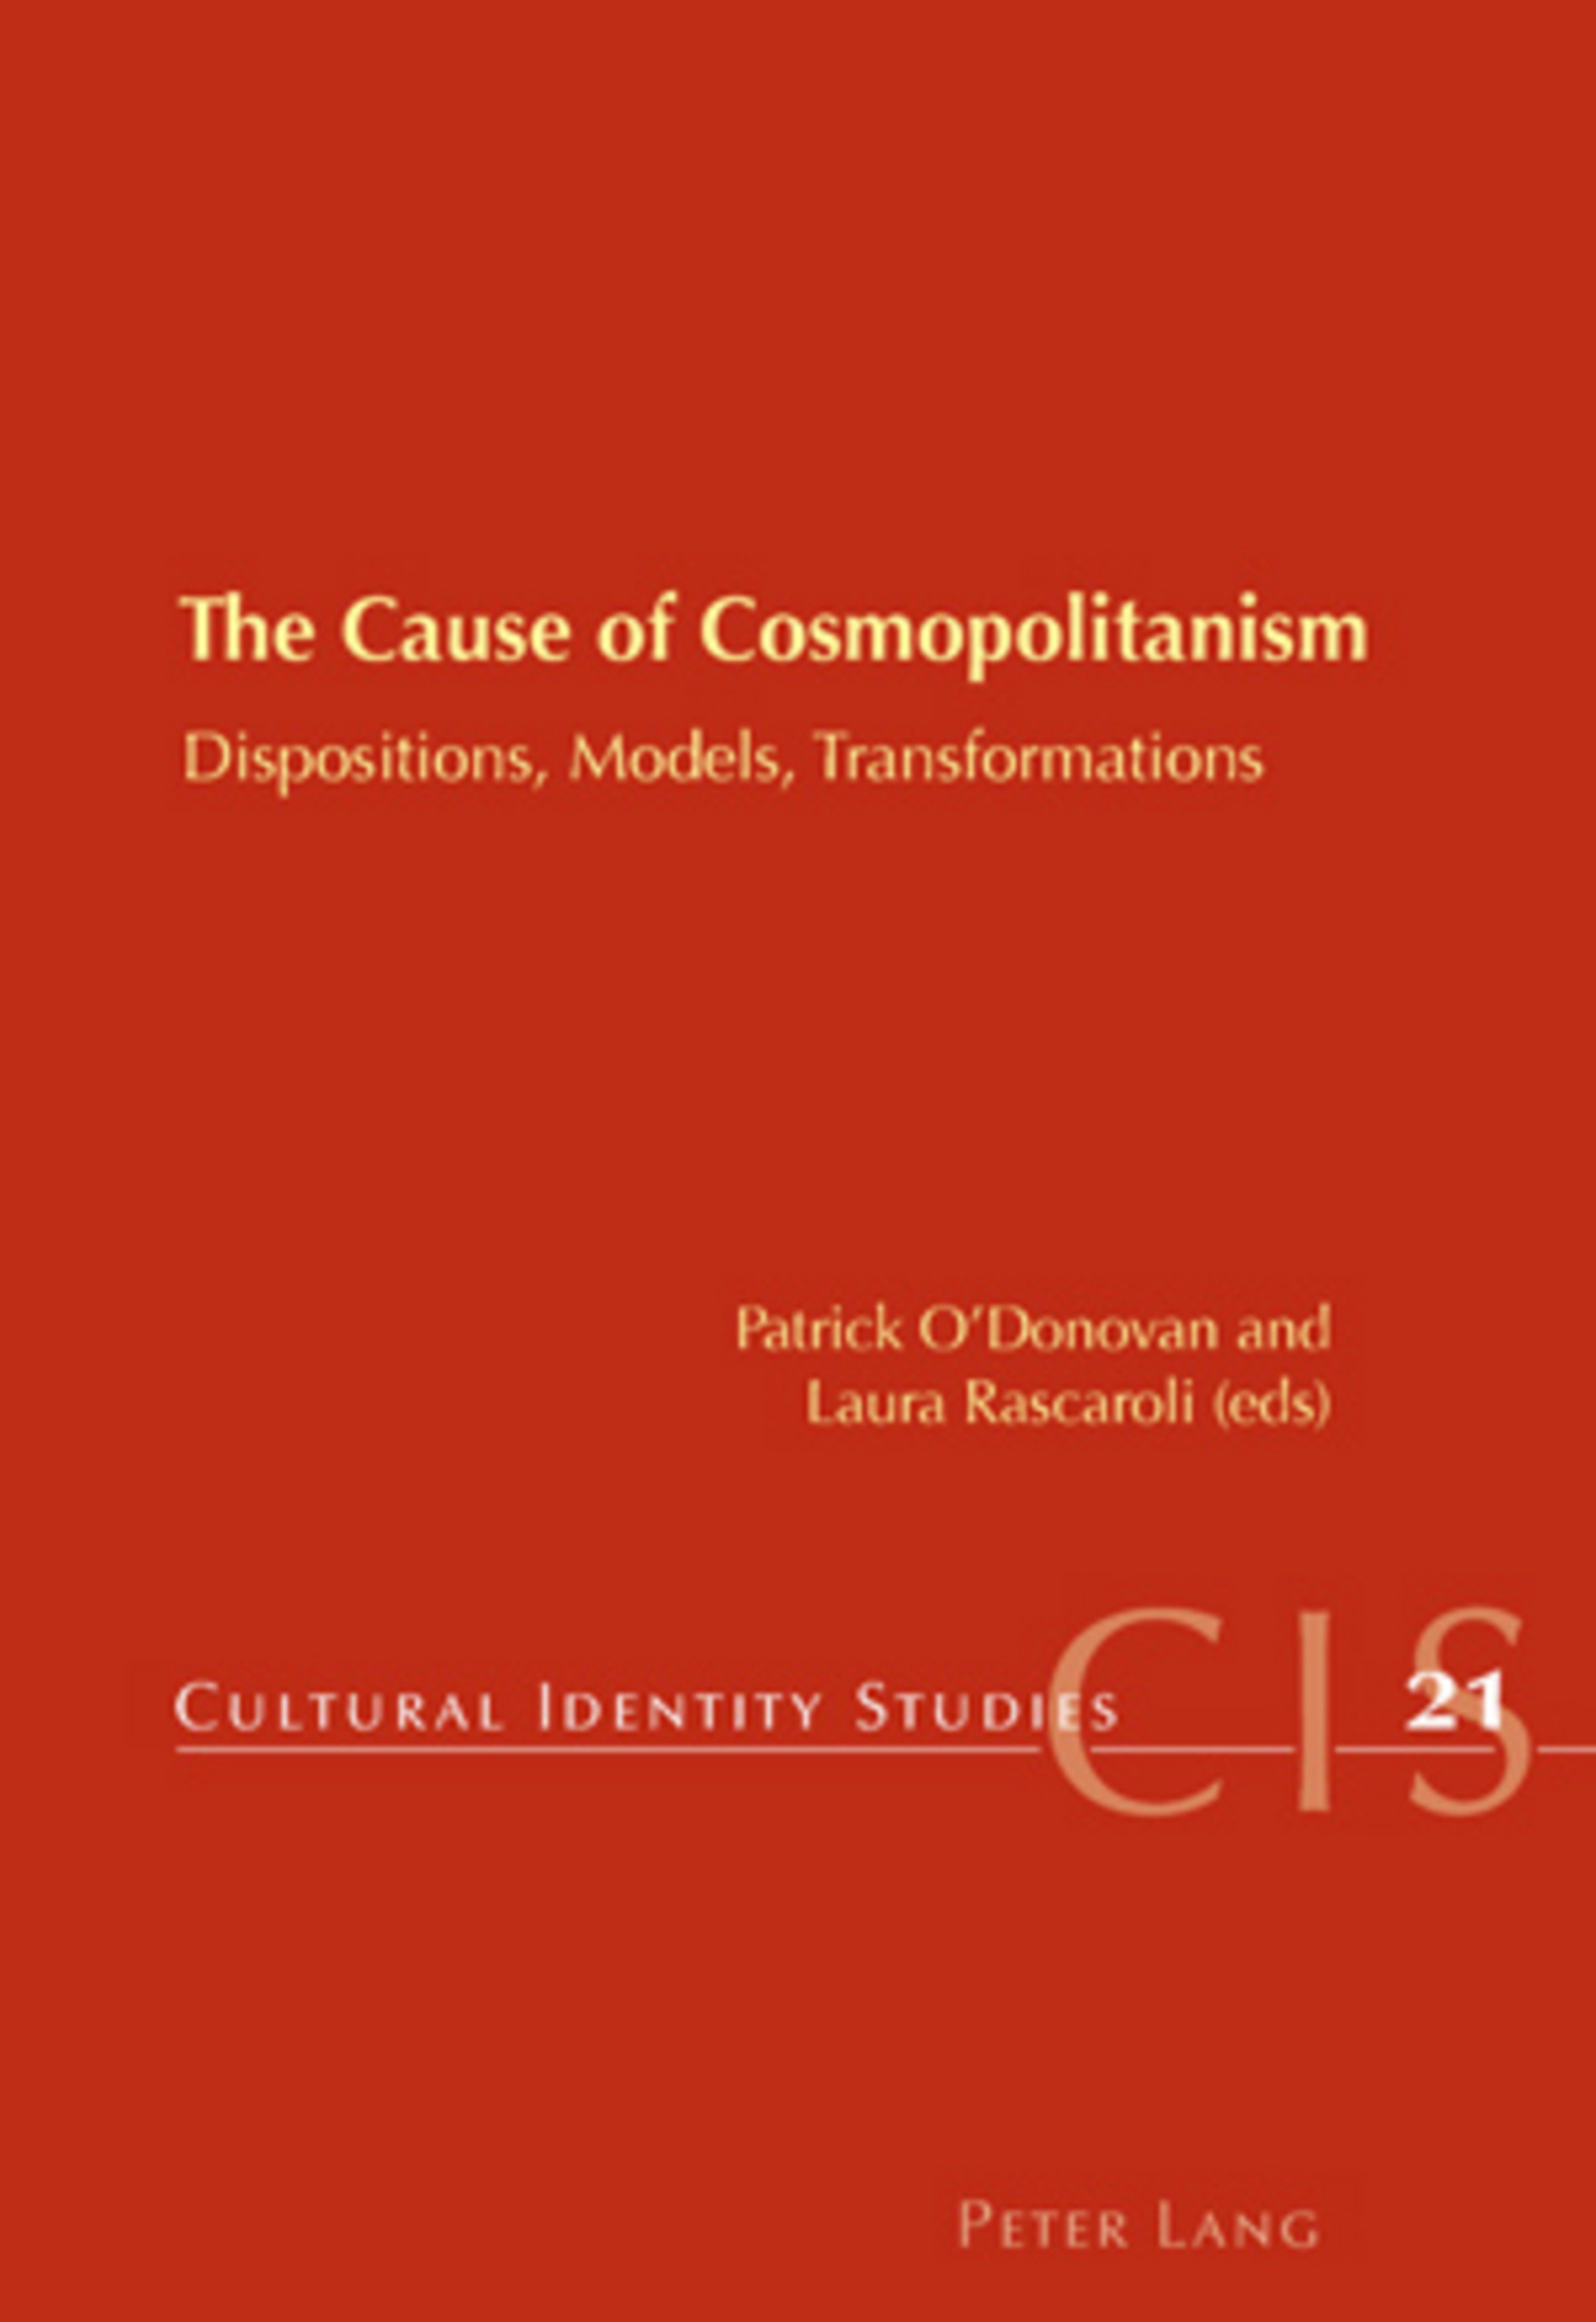 Title: The Cause of Cosmopolitanism